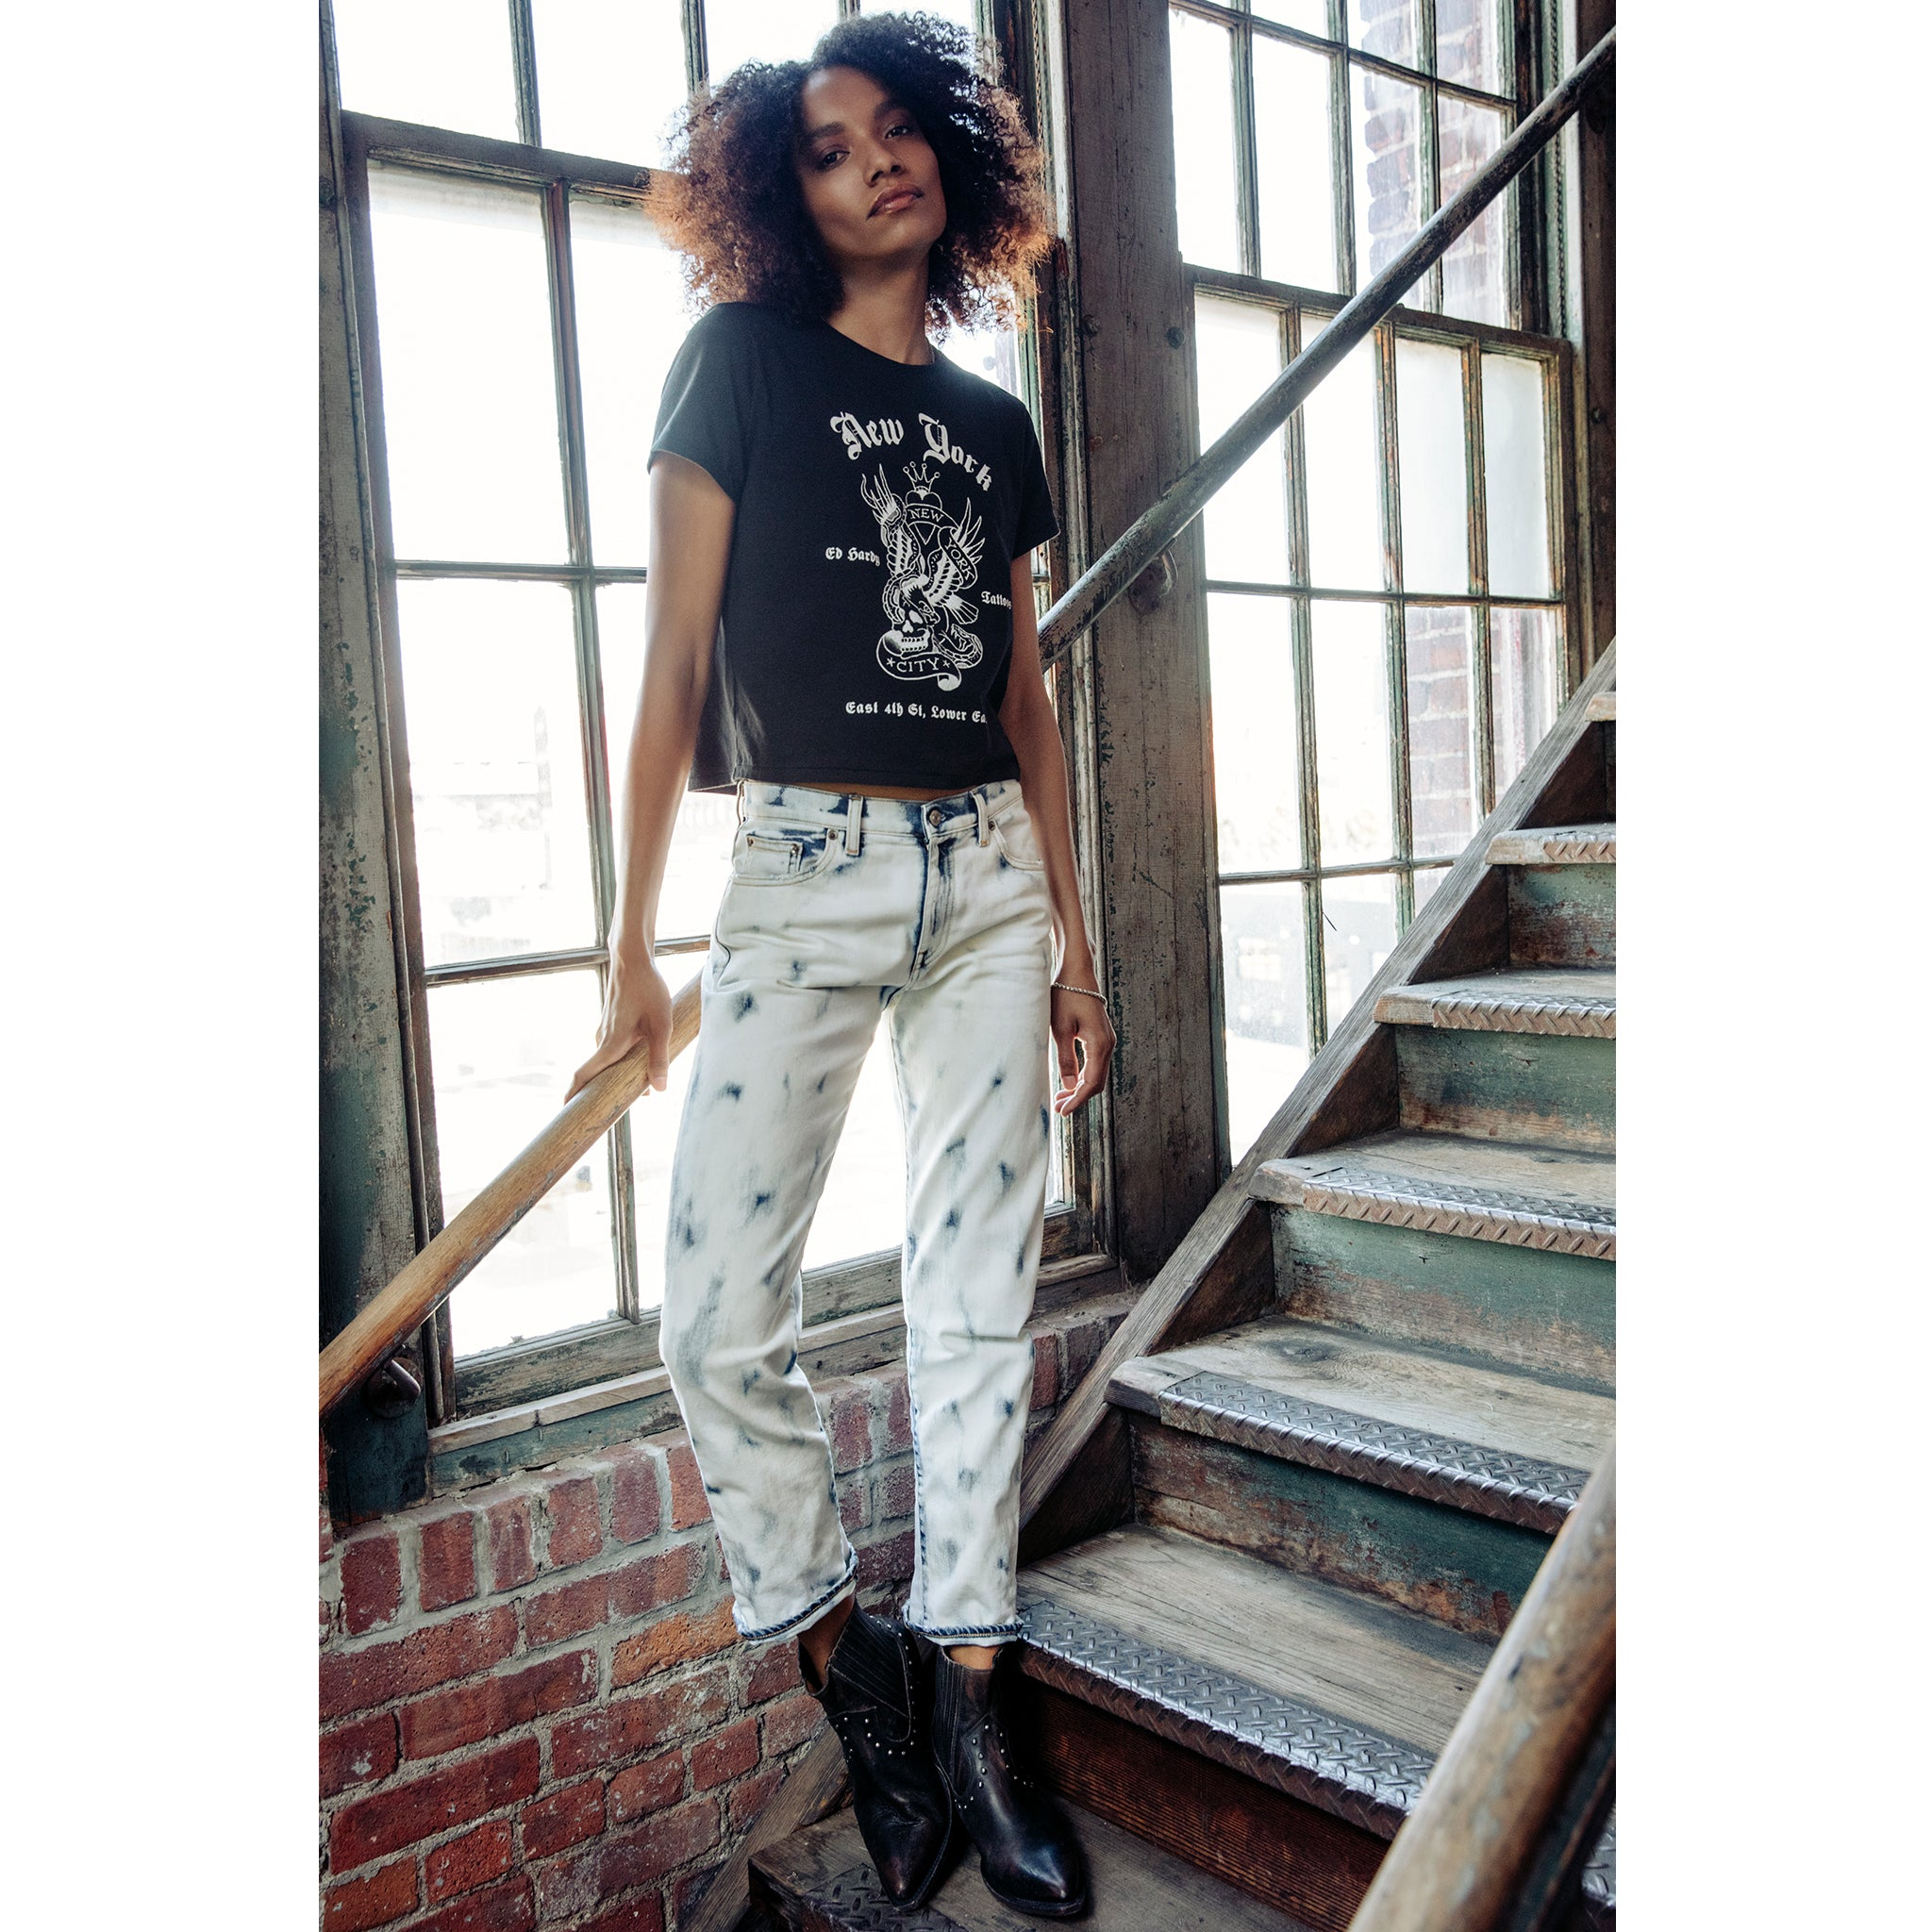 NEW YORK EAGLE CROPPED WOMEN'S TEE